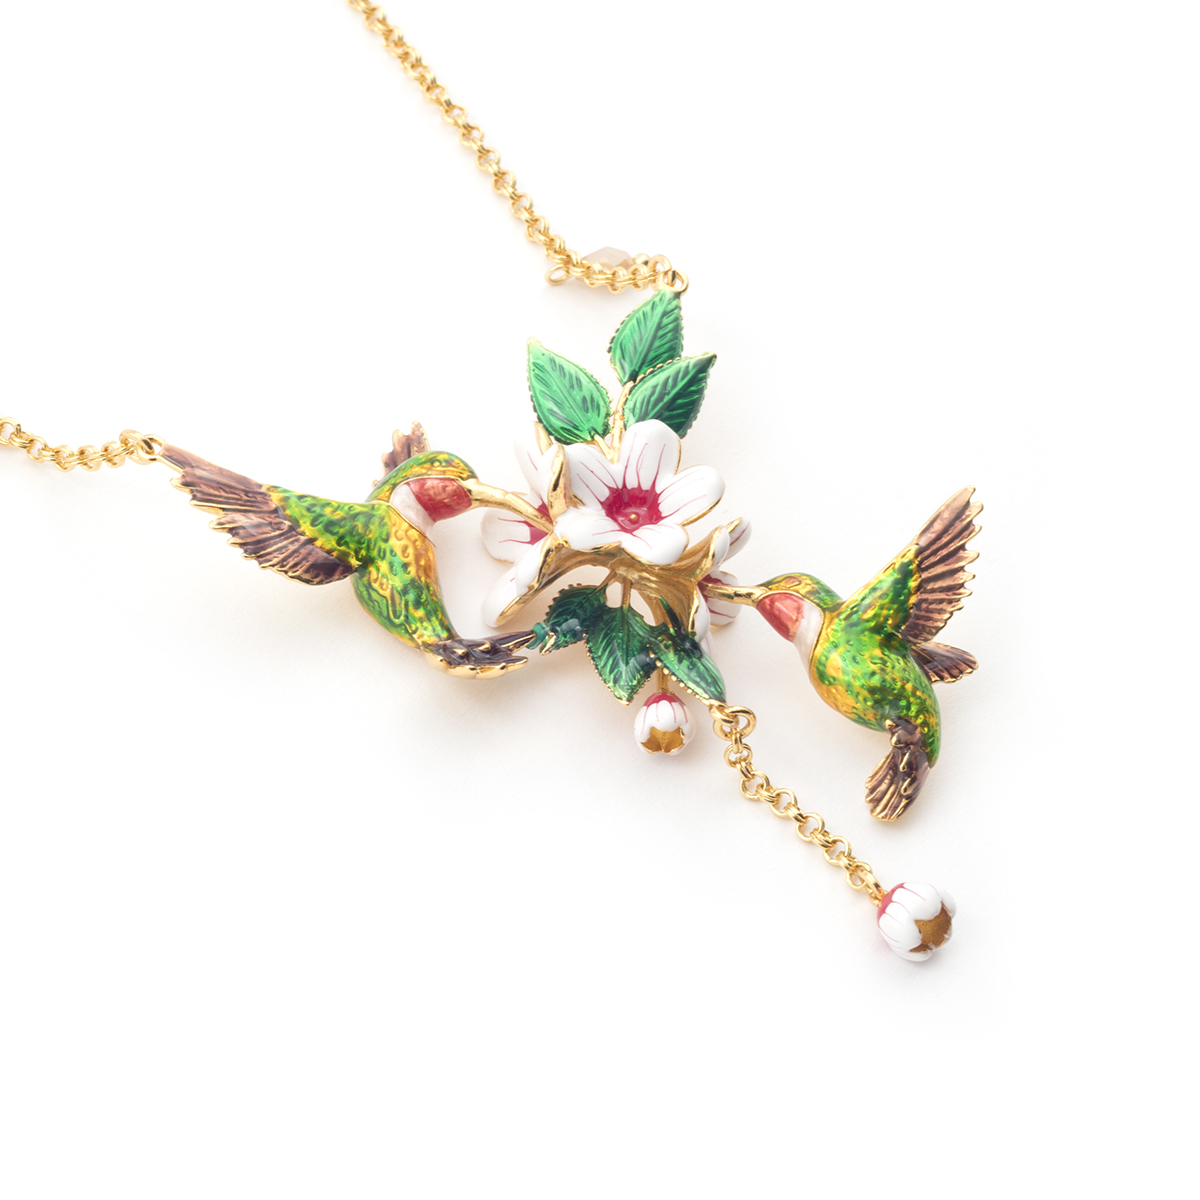 Hummingbird chain necklace by Bill Skinner